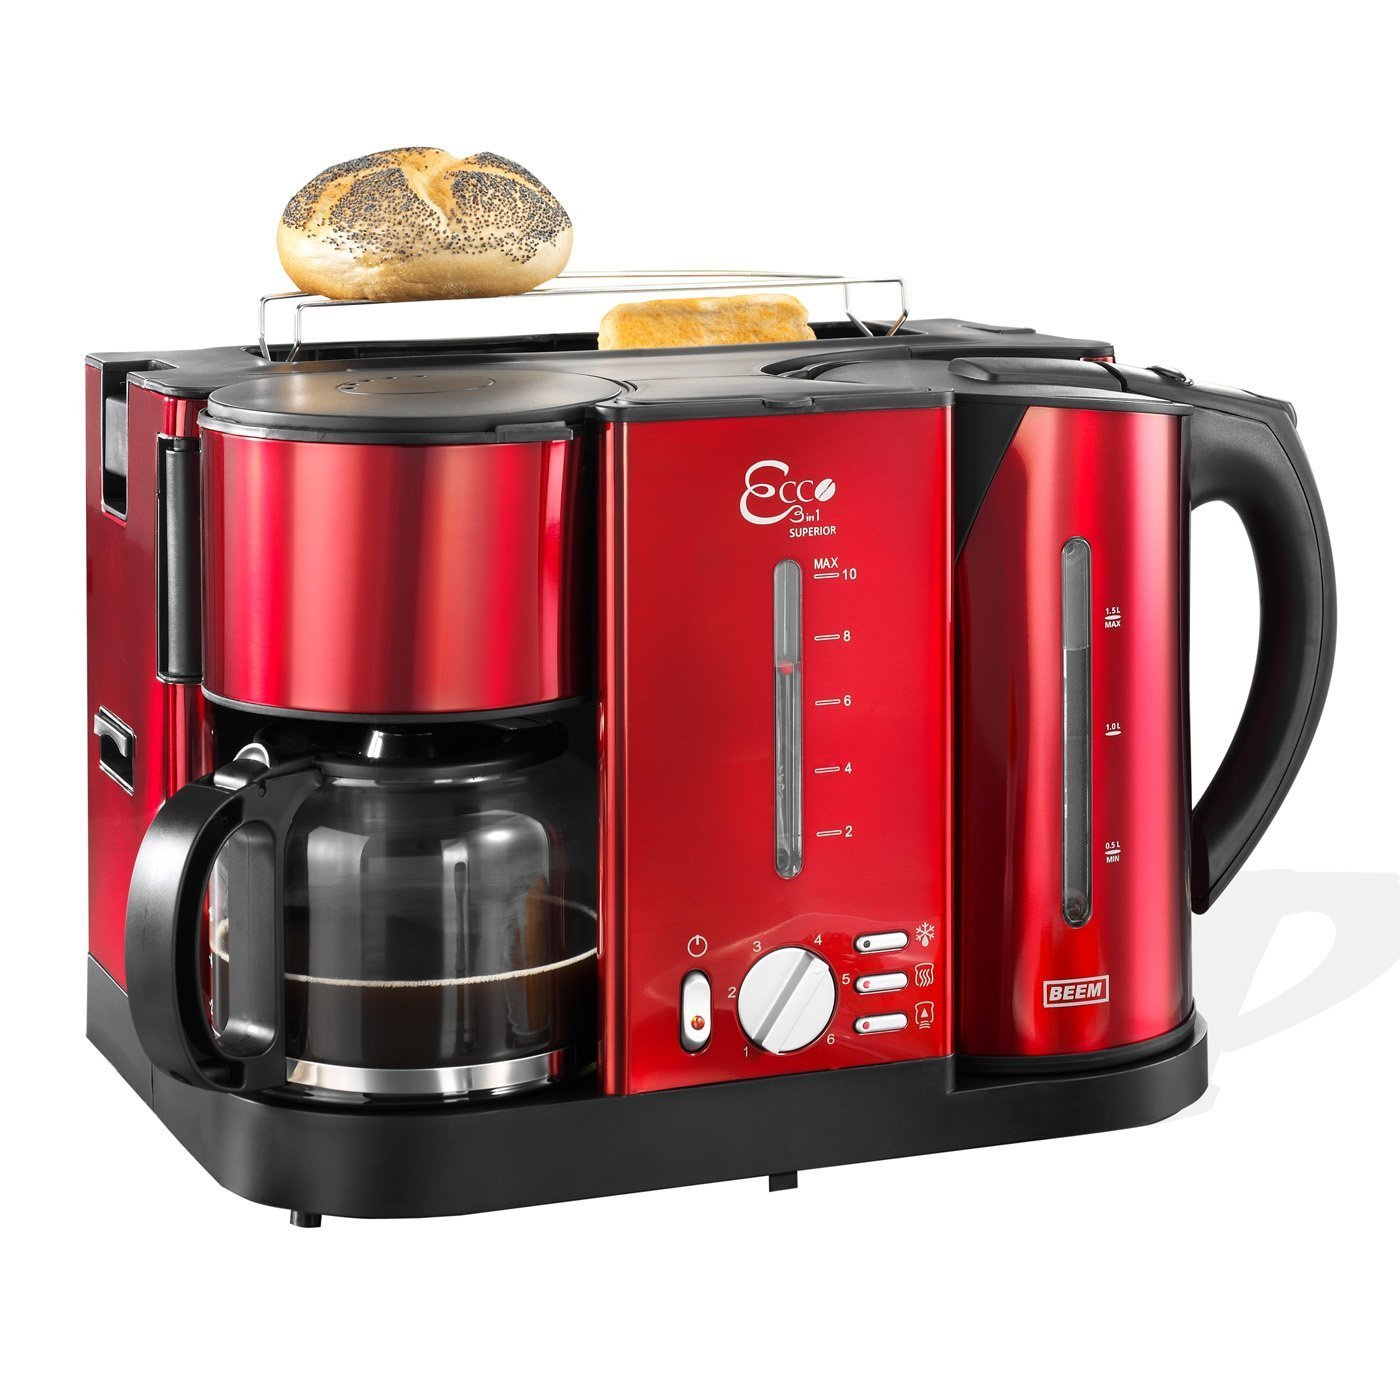 beem ecco 3 in 1 fr hst cks center kaffeemaschine toaster wasserkocher rot ebay. Black Bedroom Furniture Sets. Home Design Ideas